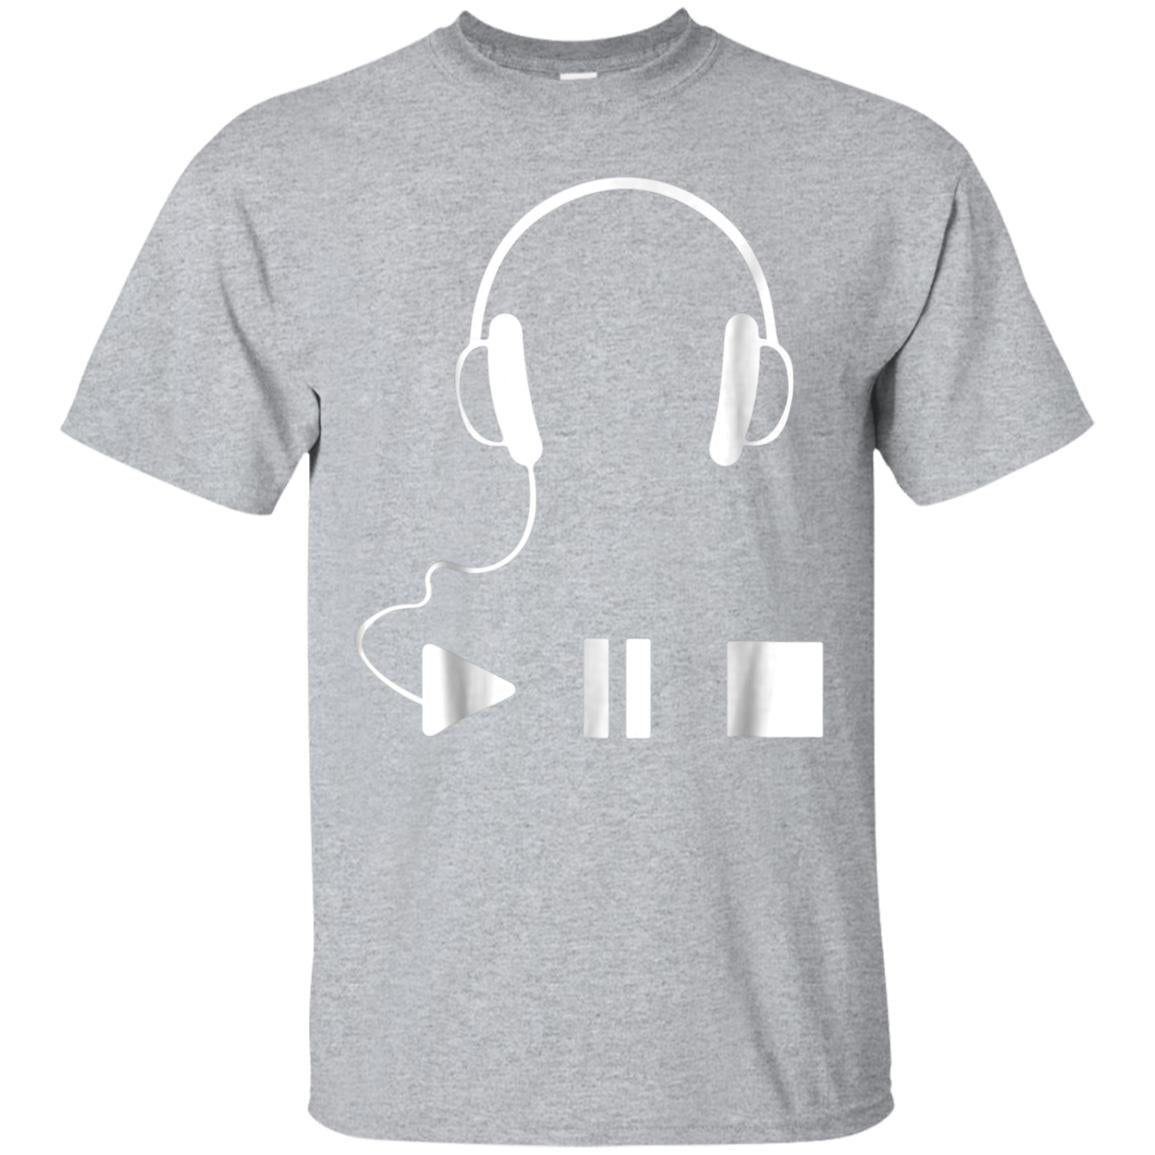 Music headphone T-shirt for Music Lovers 99promocode